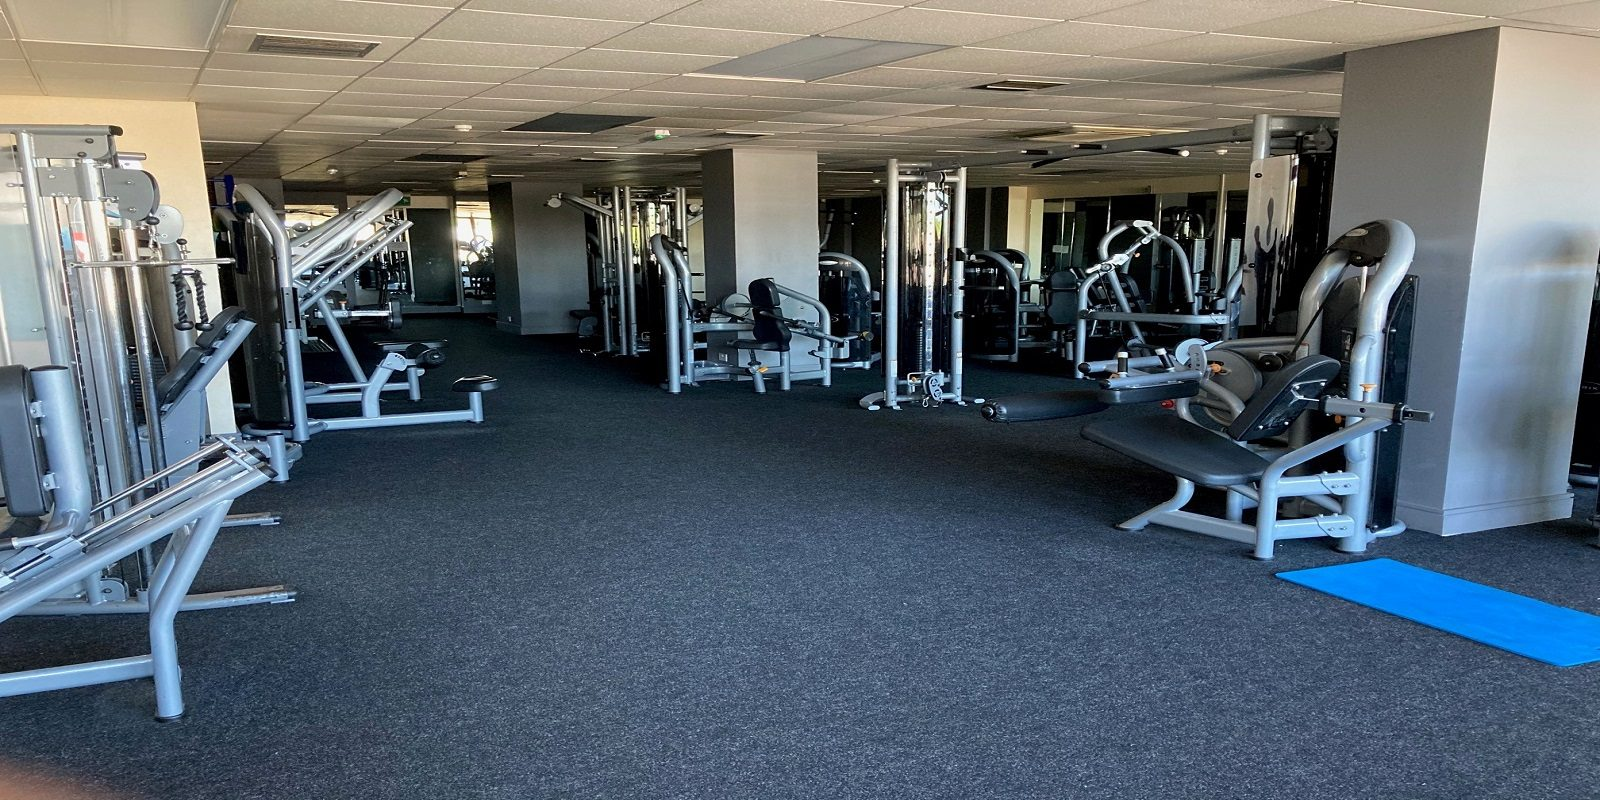 FULLY FITTED GYM / HEALTHCLUB TO BE LET